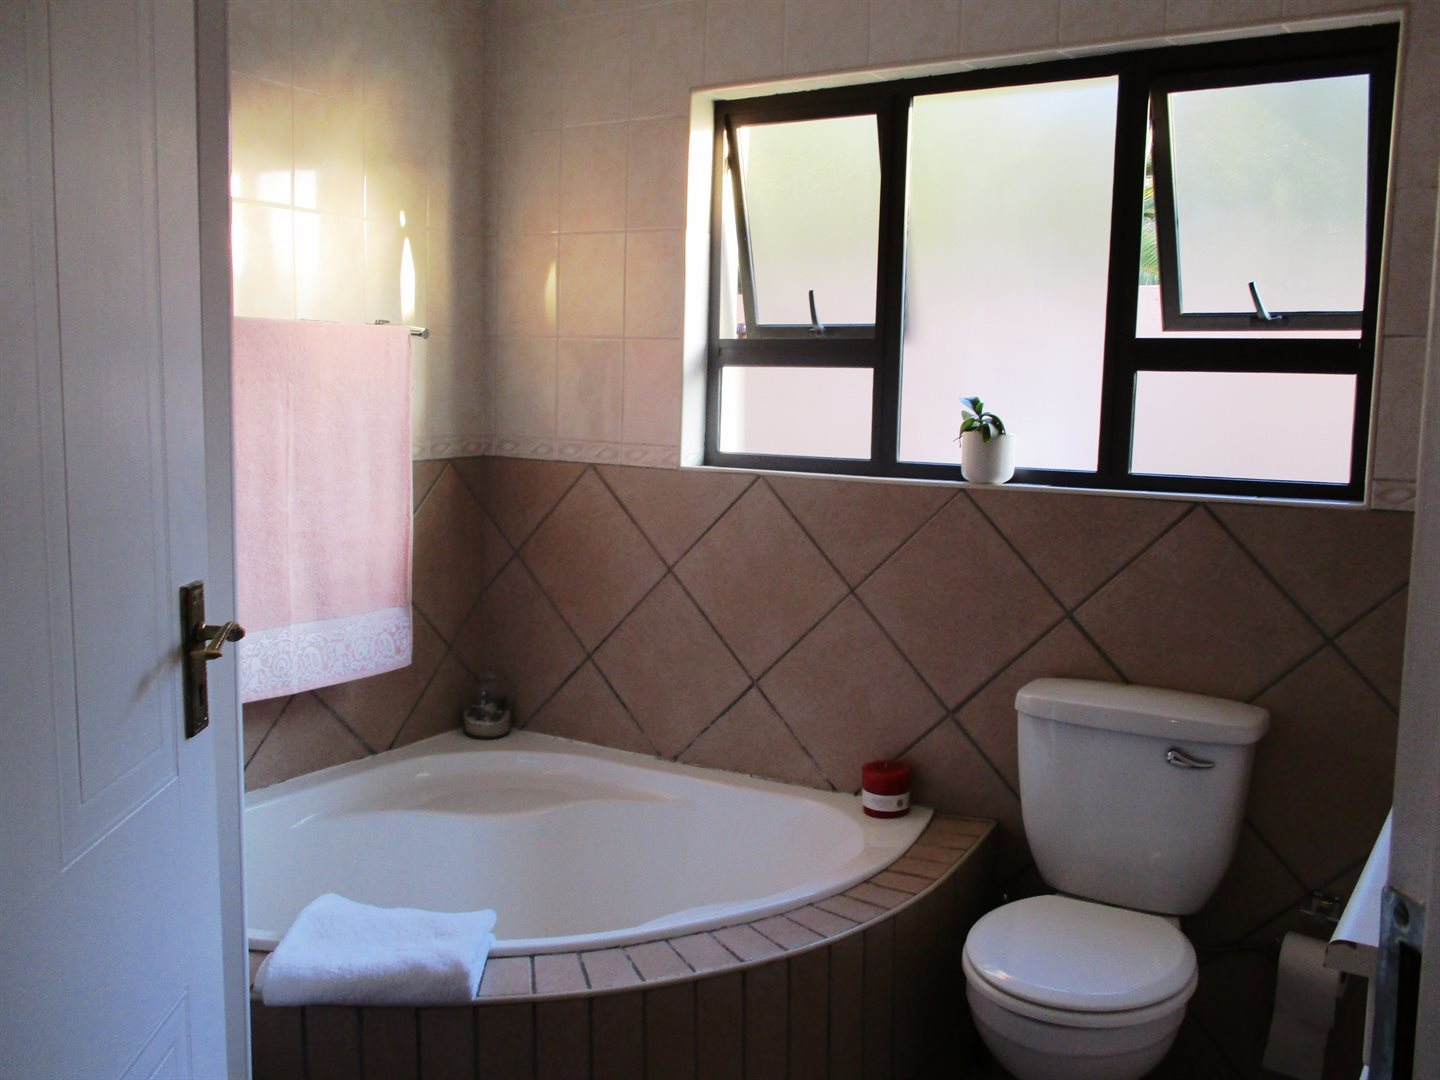 Thatchfield Cresent property for sale. Ref No: 13568232. Picture no 12